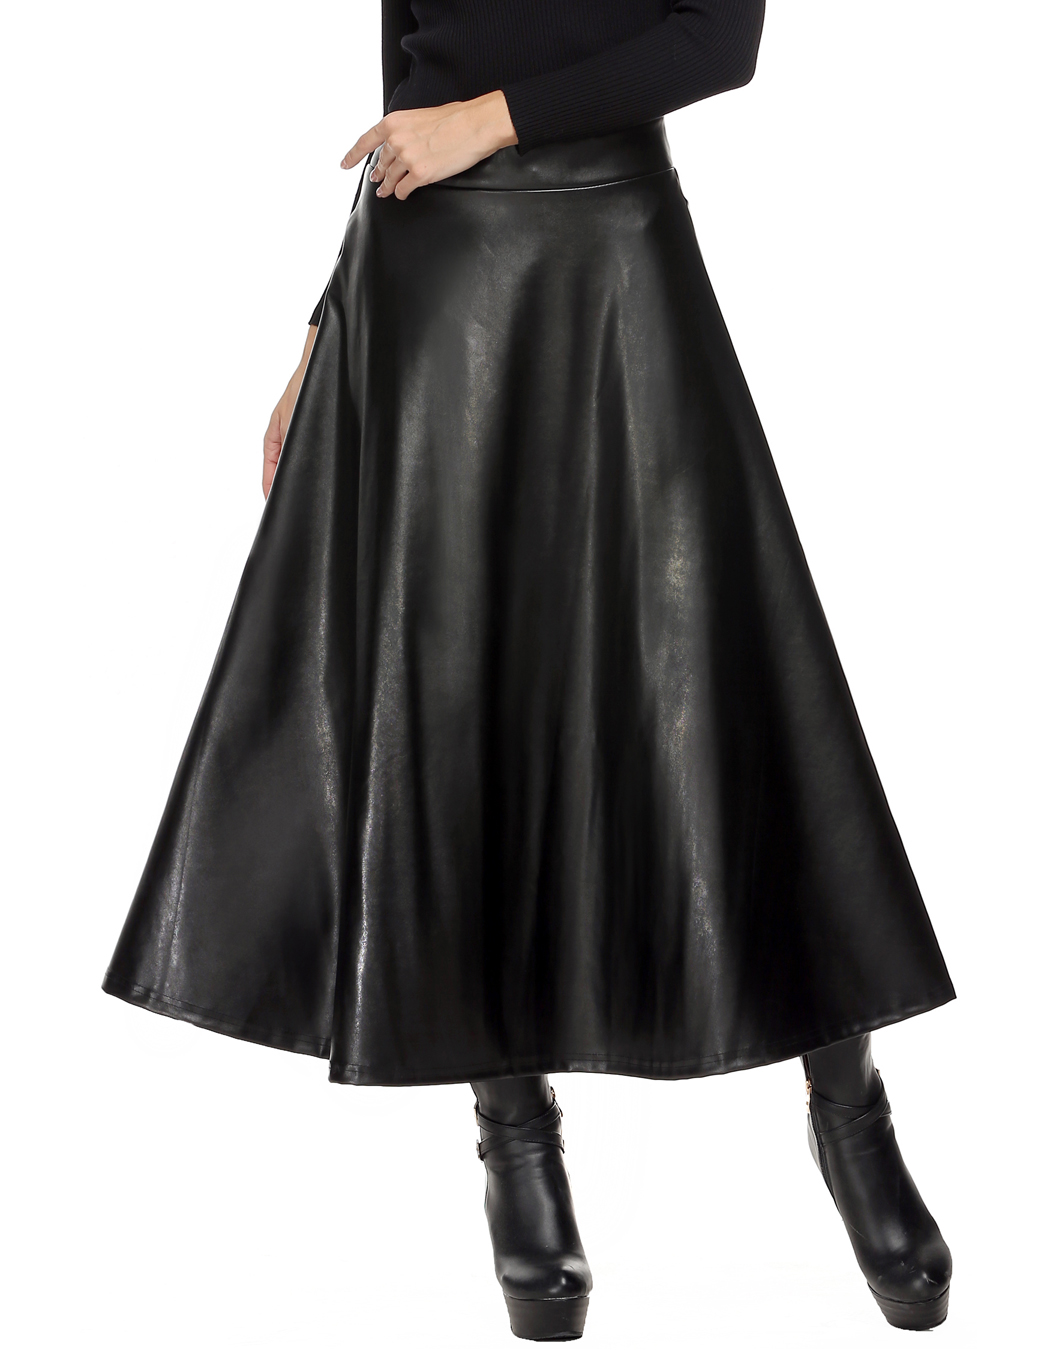 Summer Faux Leather Skirt Pleated Women Skirt High Waist Swing Long Maxi Skirts for Womens Spring Autumn Solid Black Tutu Skirts